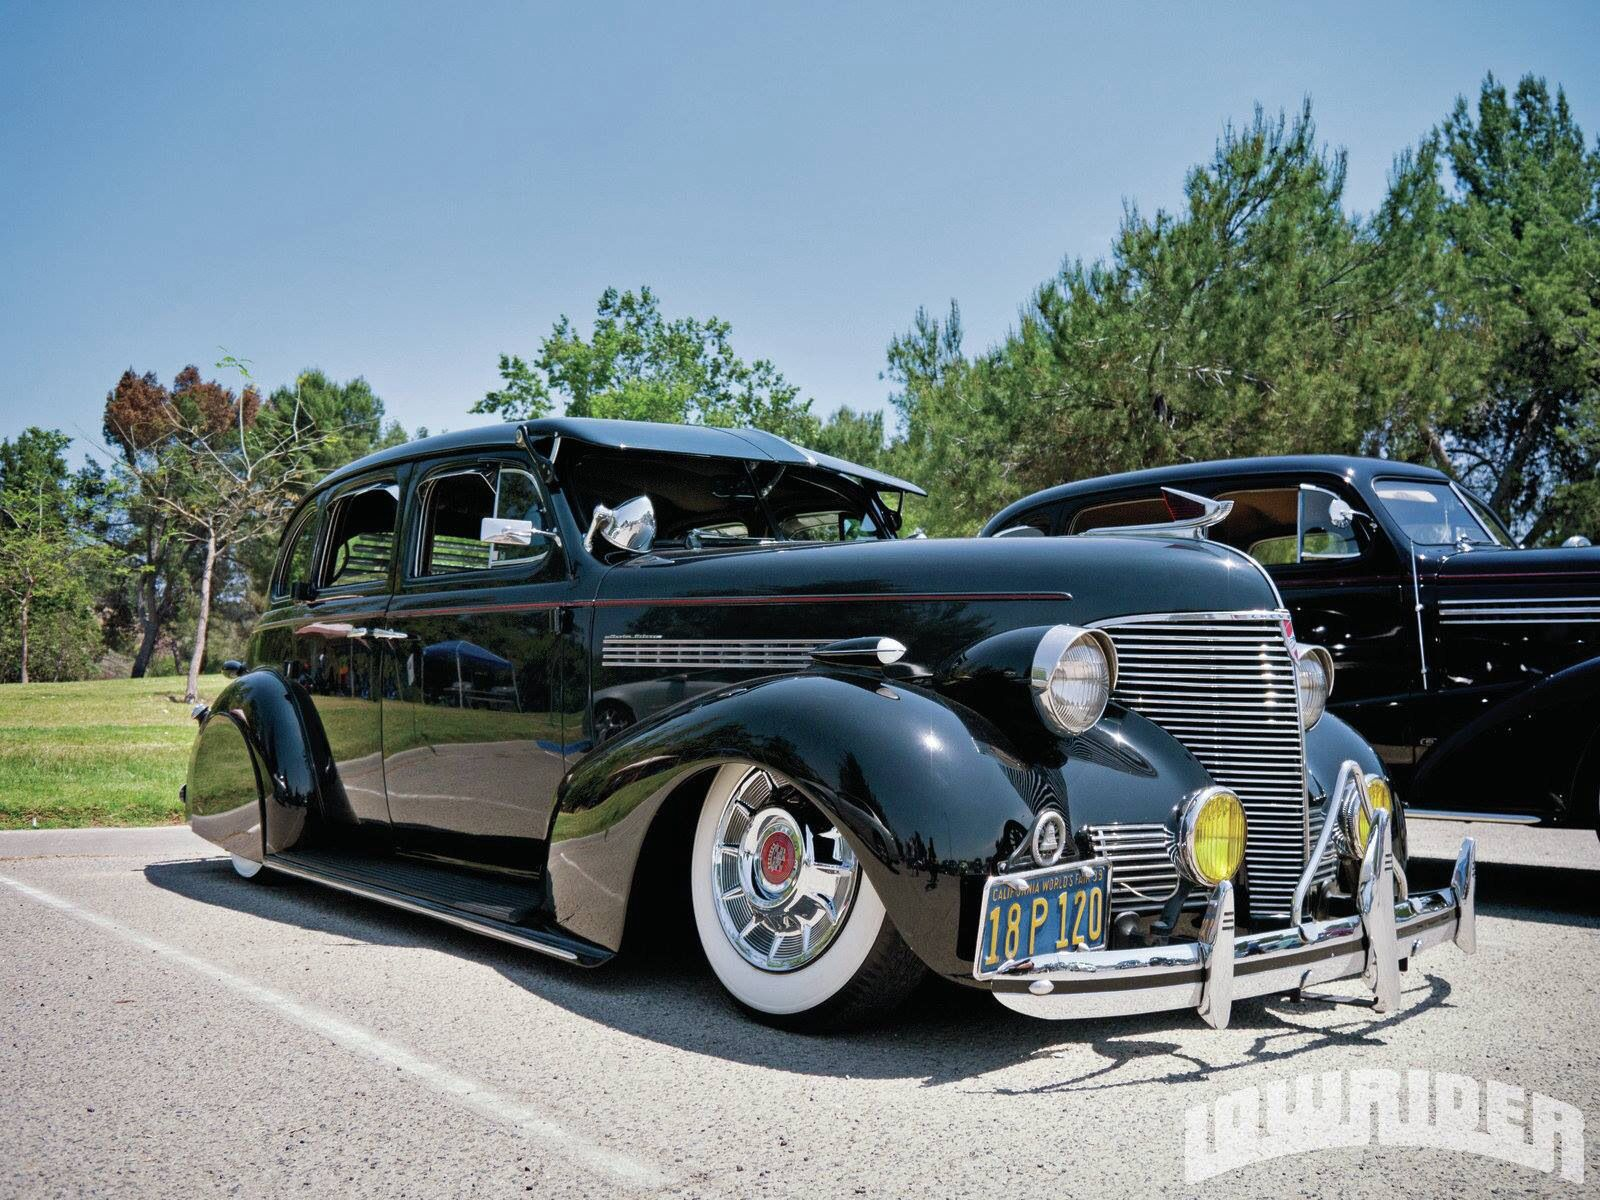 Old times carrazo | Dream cars, chicks,and Chicano stuff. | Pinterest